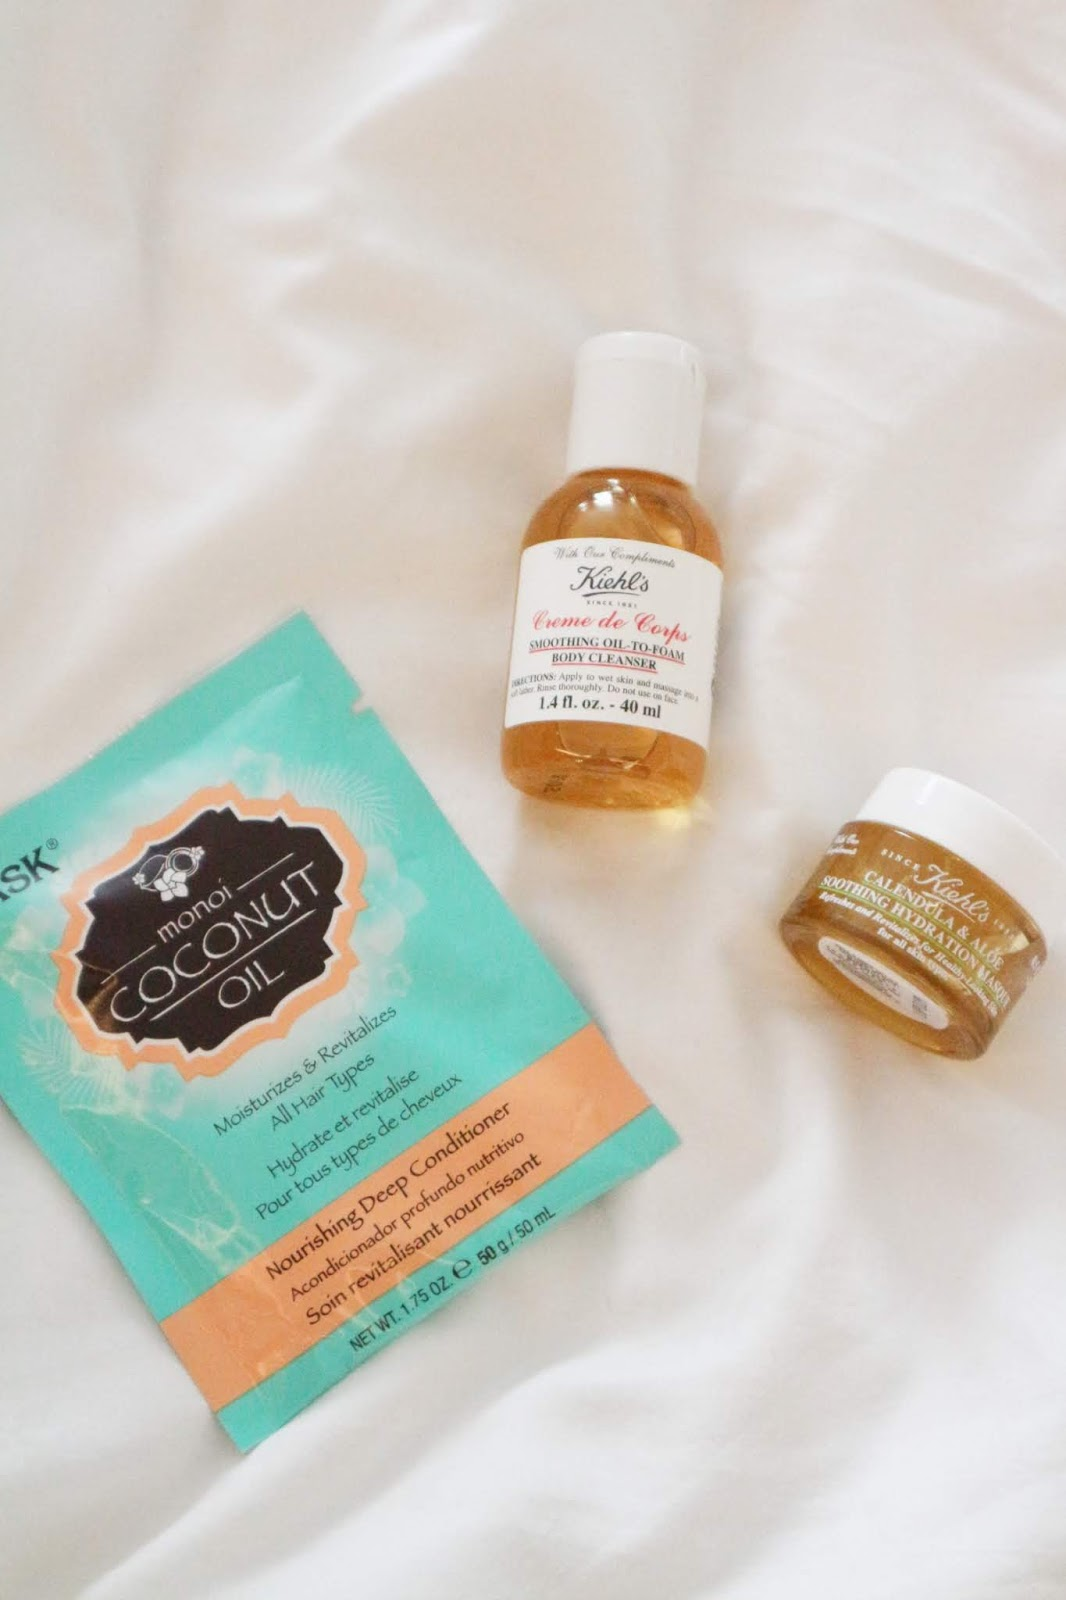 Kiehl's Travel Size